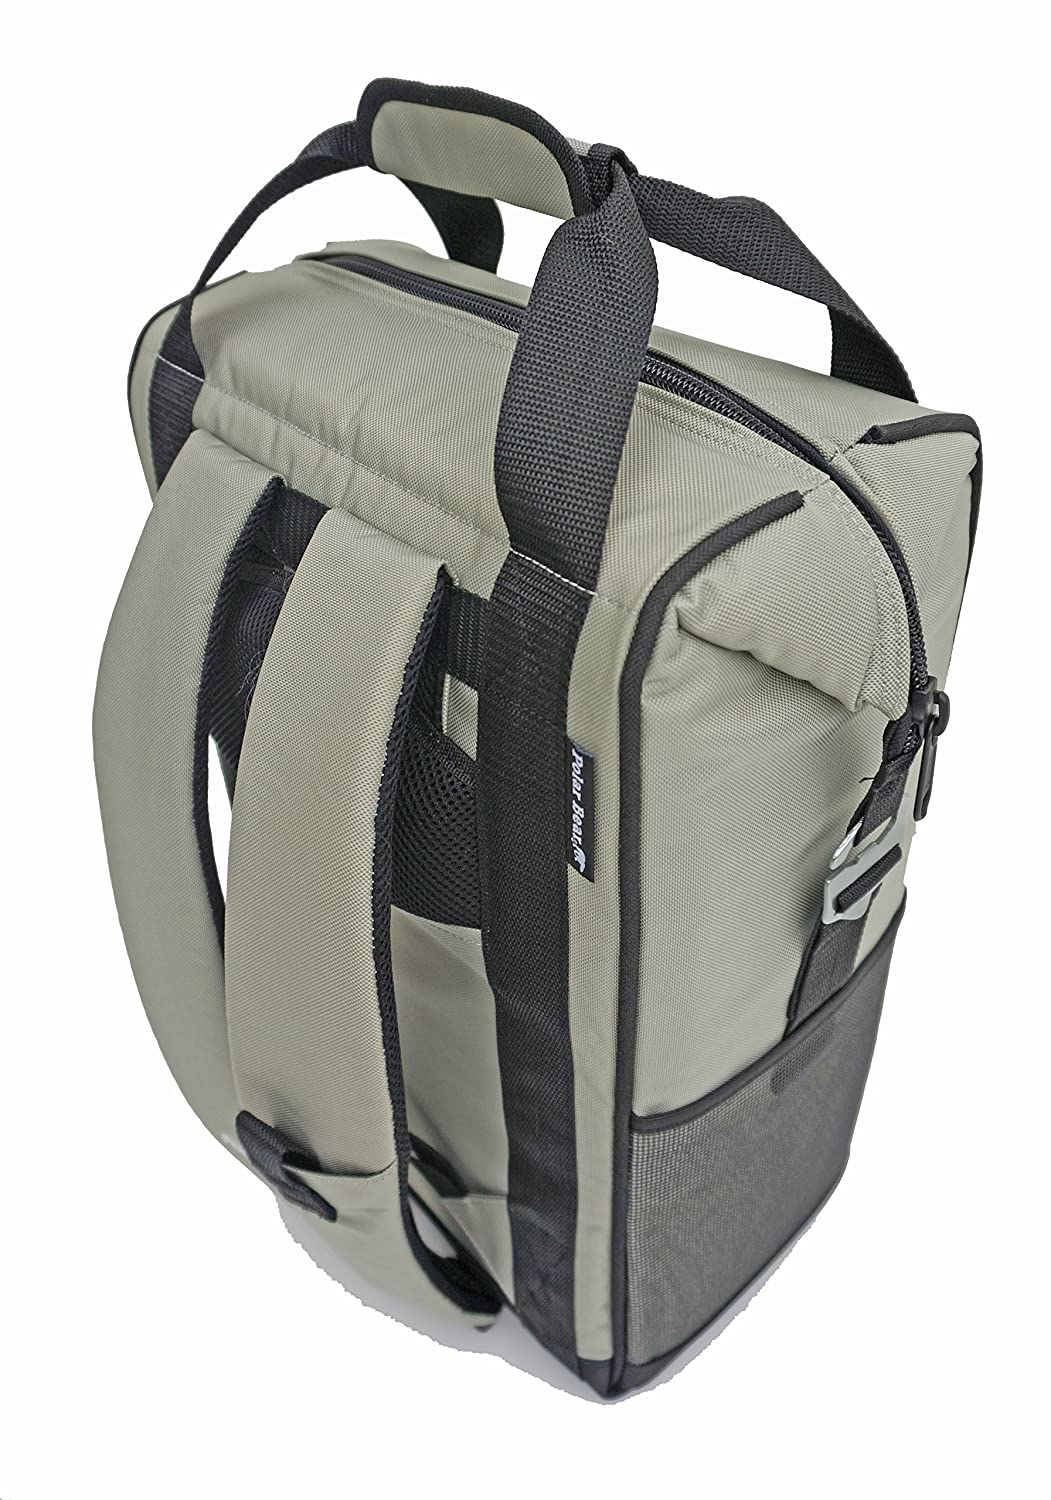 Polar Bear Backpack Cooler Polar Bear Eclipse UV-Resistant Cooler (Backpack)